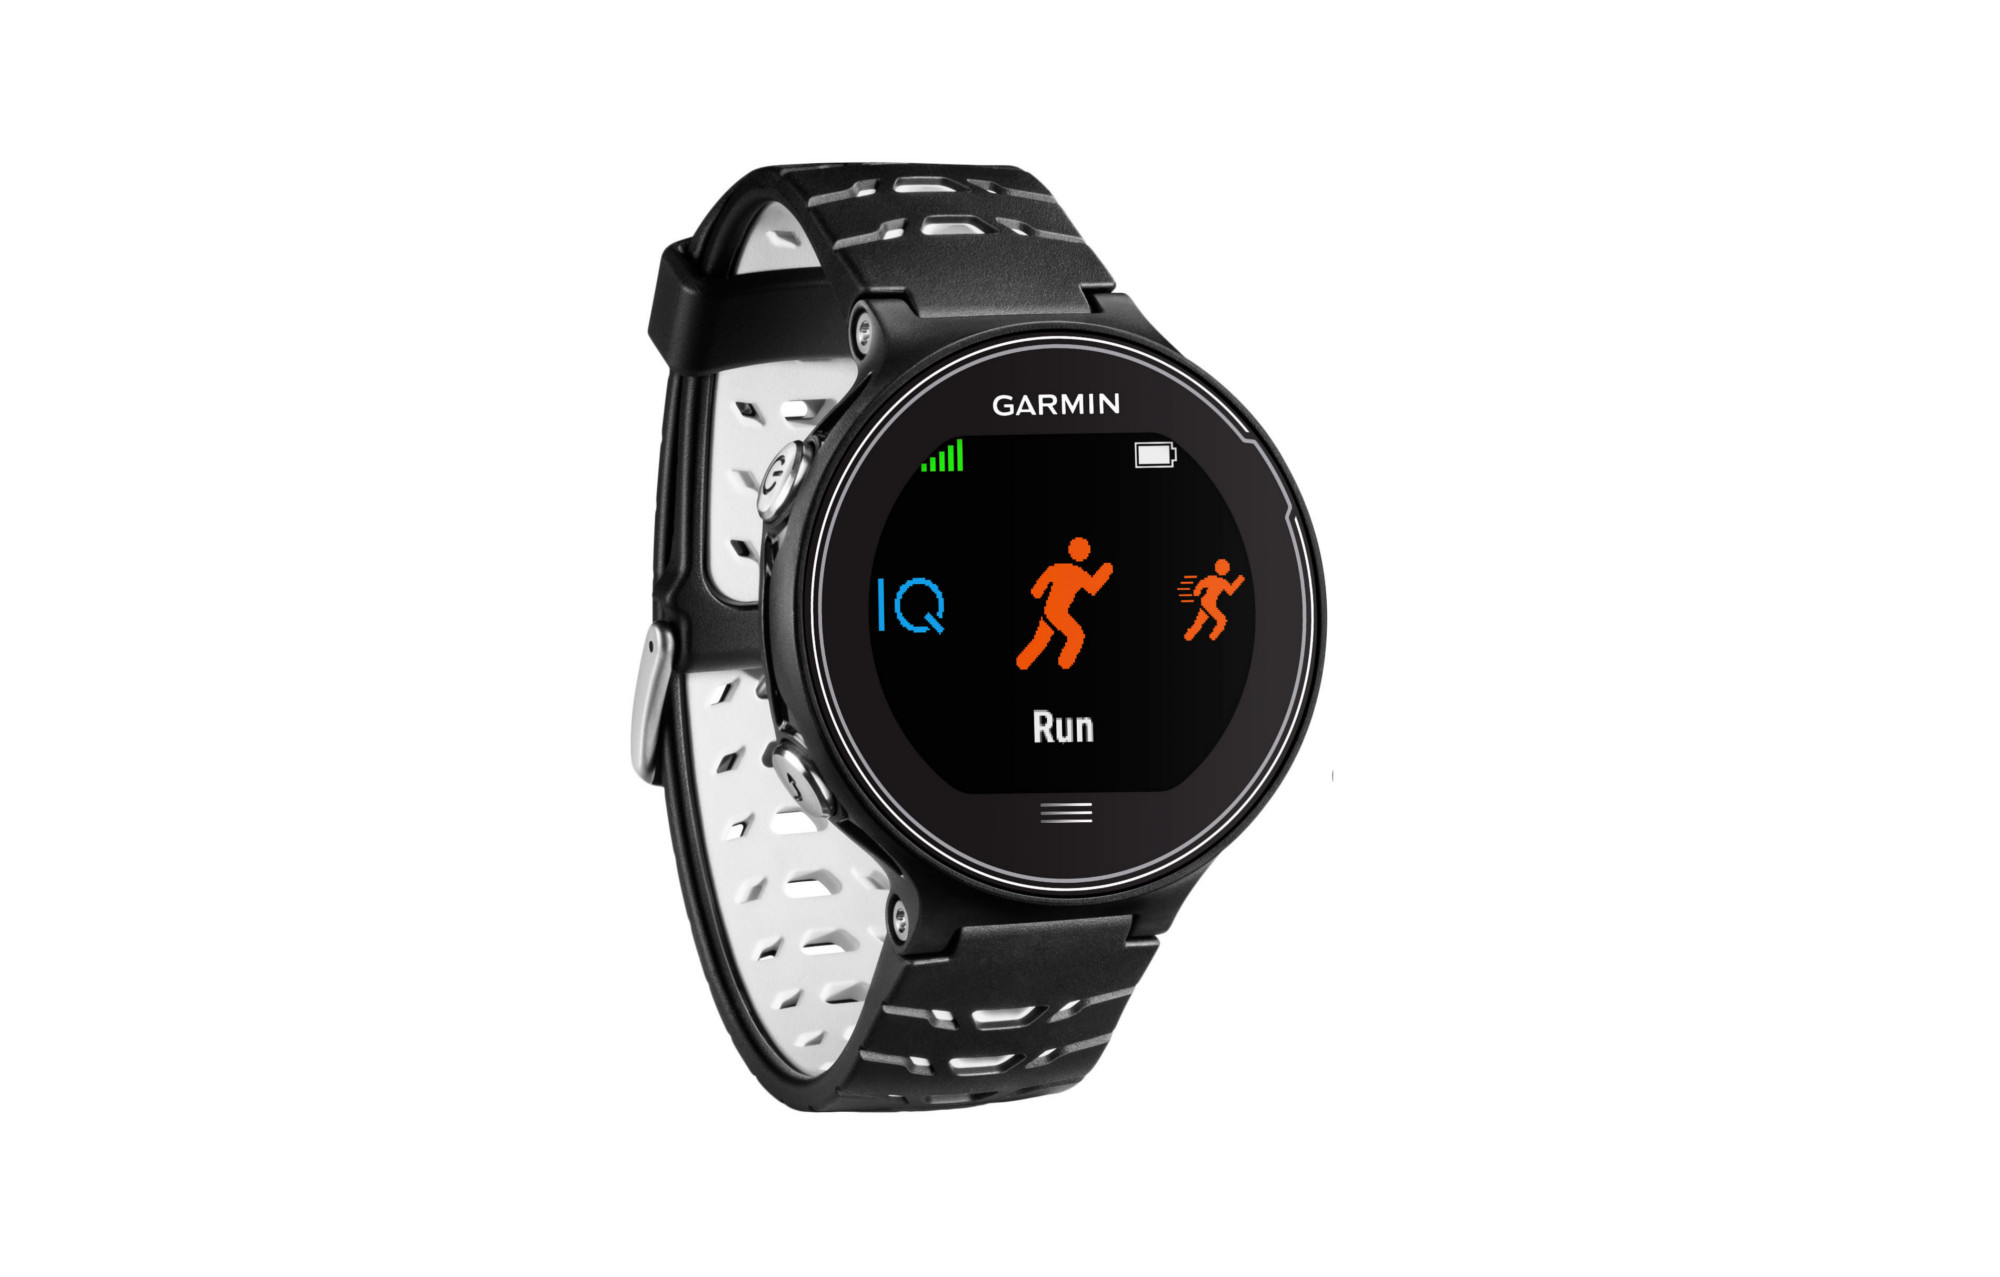 montre gps garmin forerunner 630 hrm run blanc noir. Black Bedroom Furniture Sets. Home Design Ideas